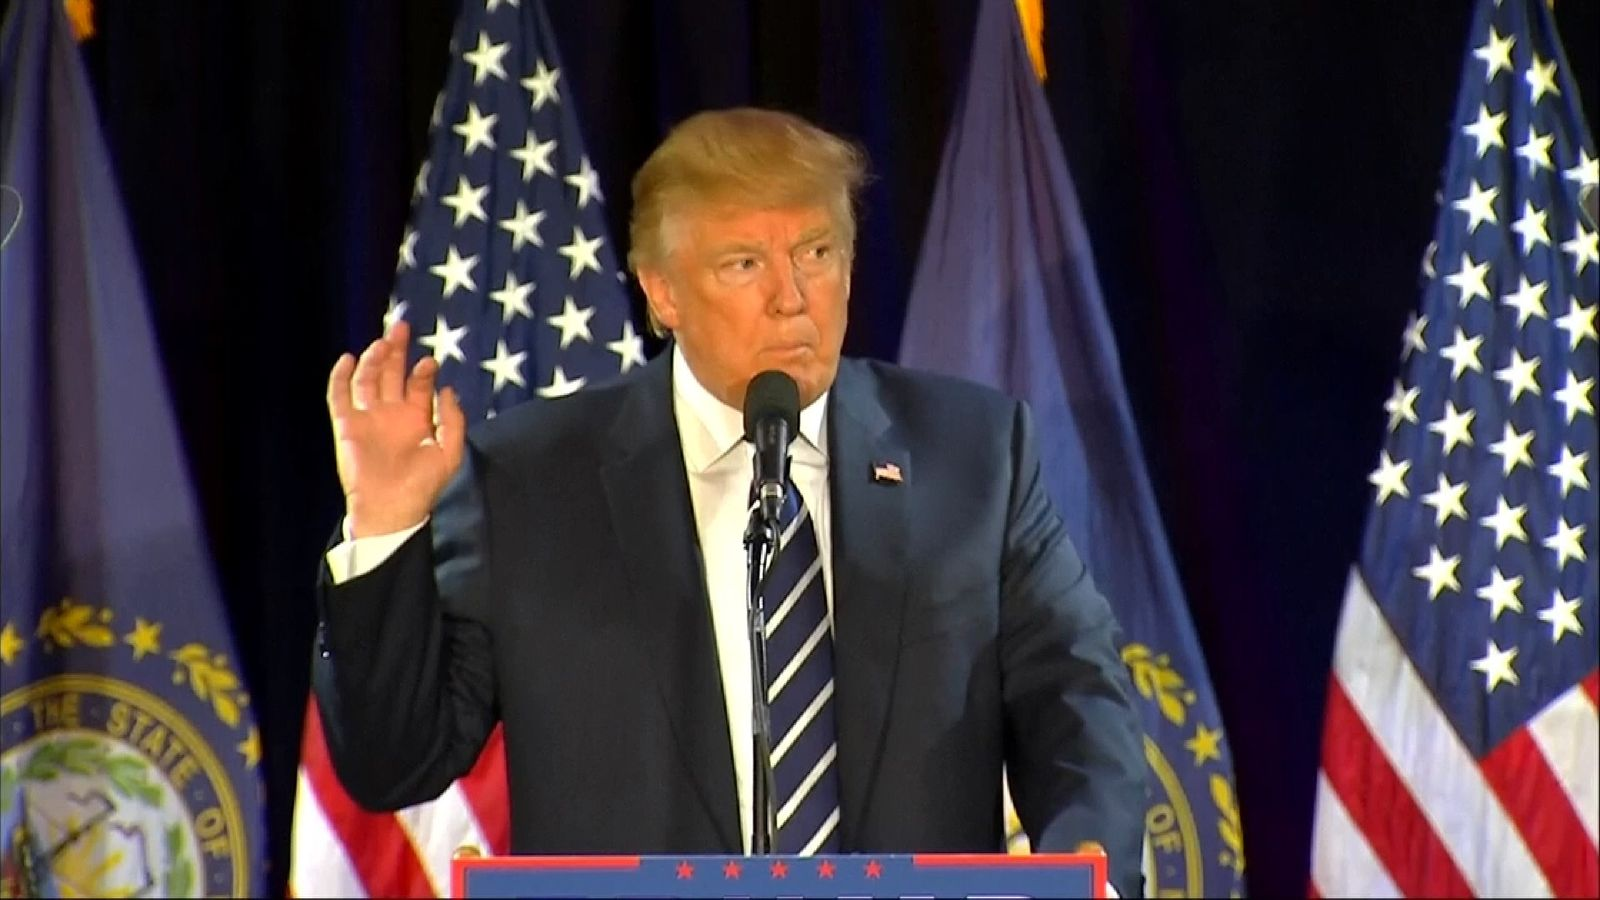 Donald Trump announces the FBI are looking into Clinton's emails again